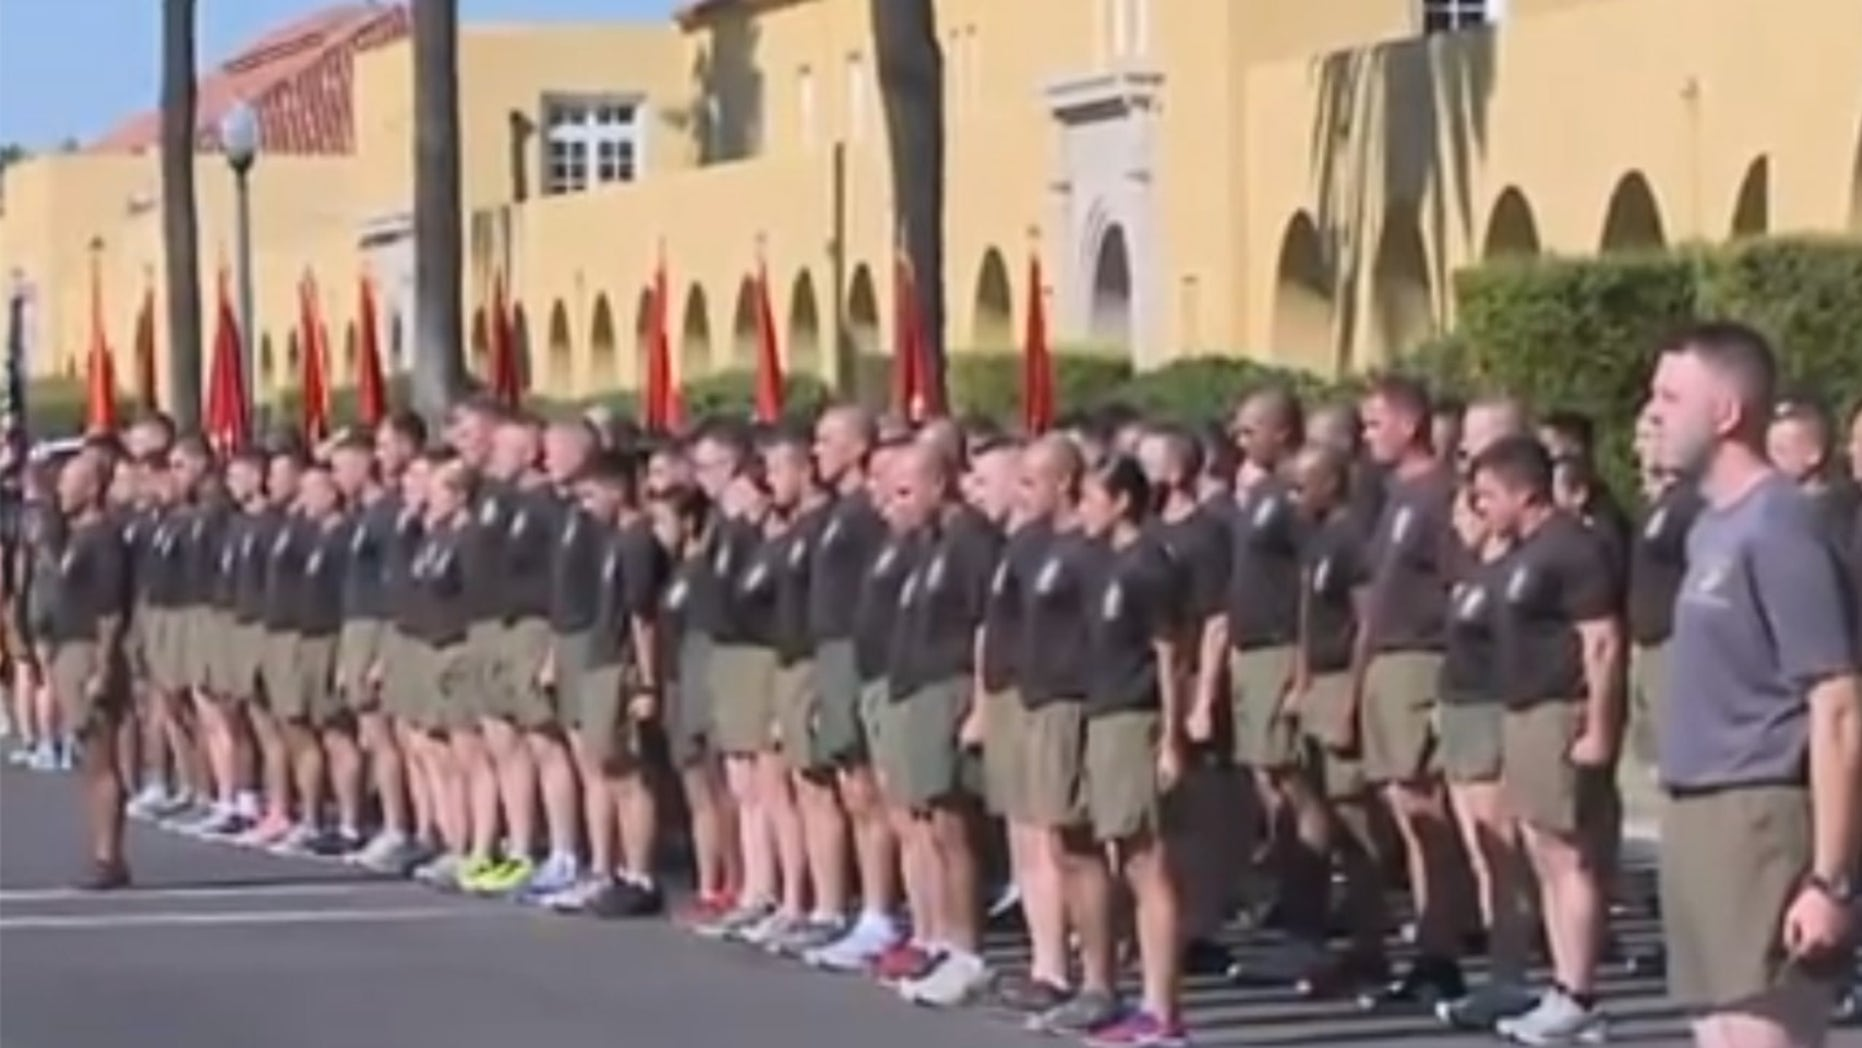 Recruits are pictured at Marine Corps Recruit Depot in San Diego, where more than 300 cases of E. coli have been reported.